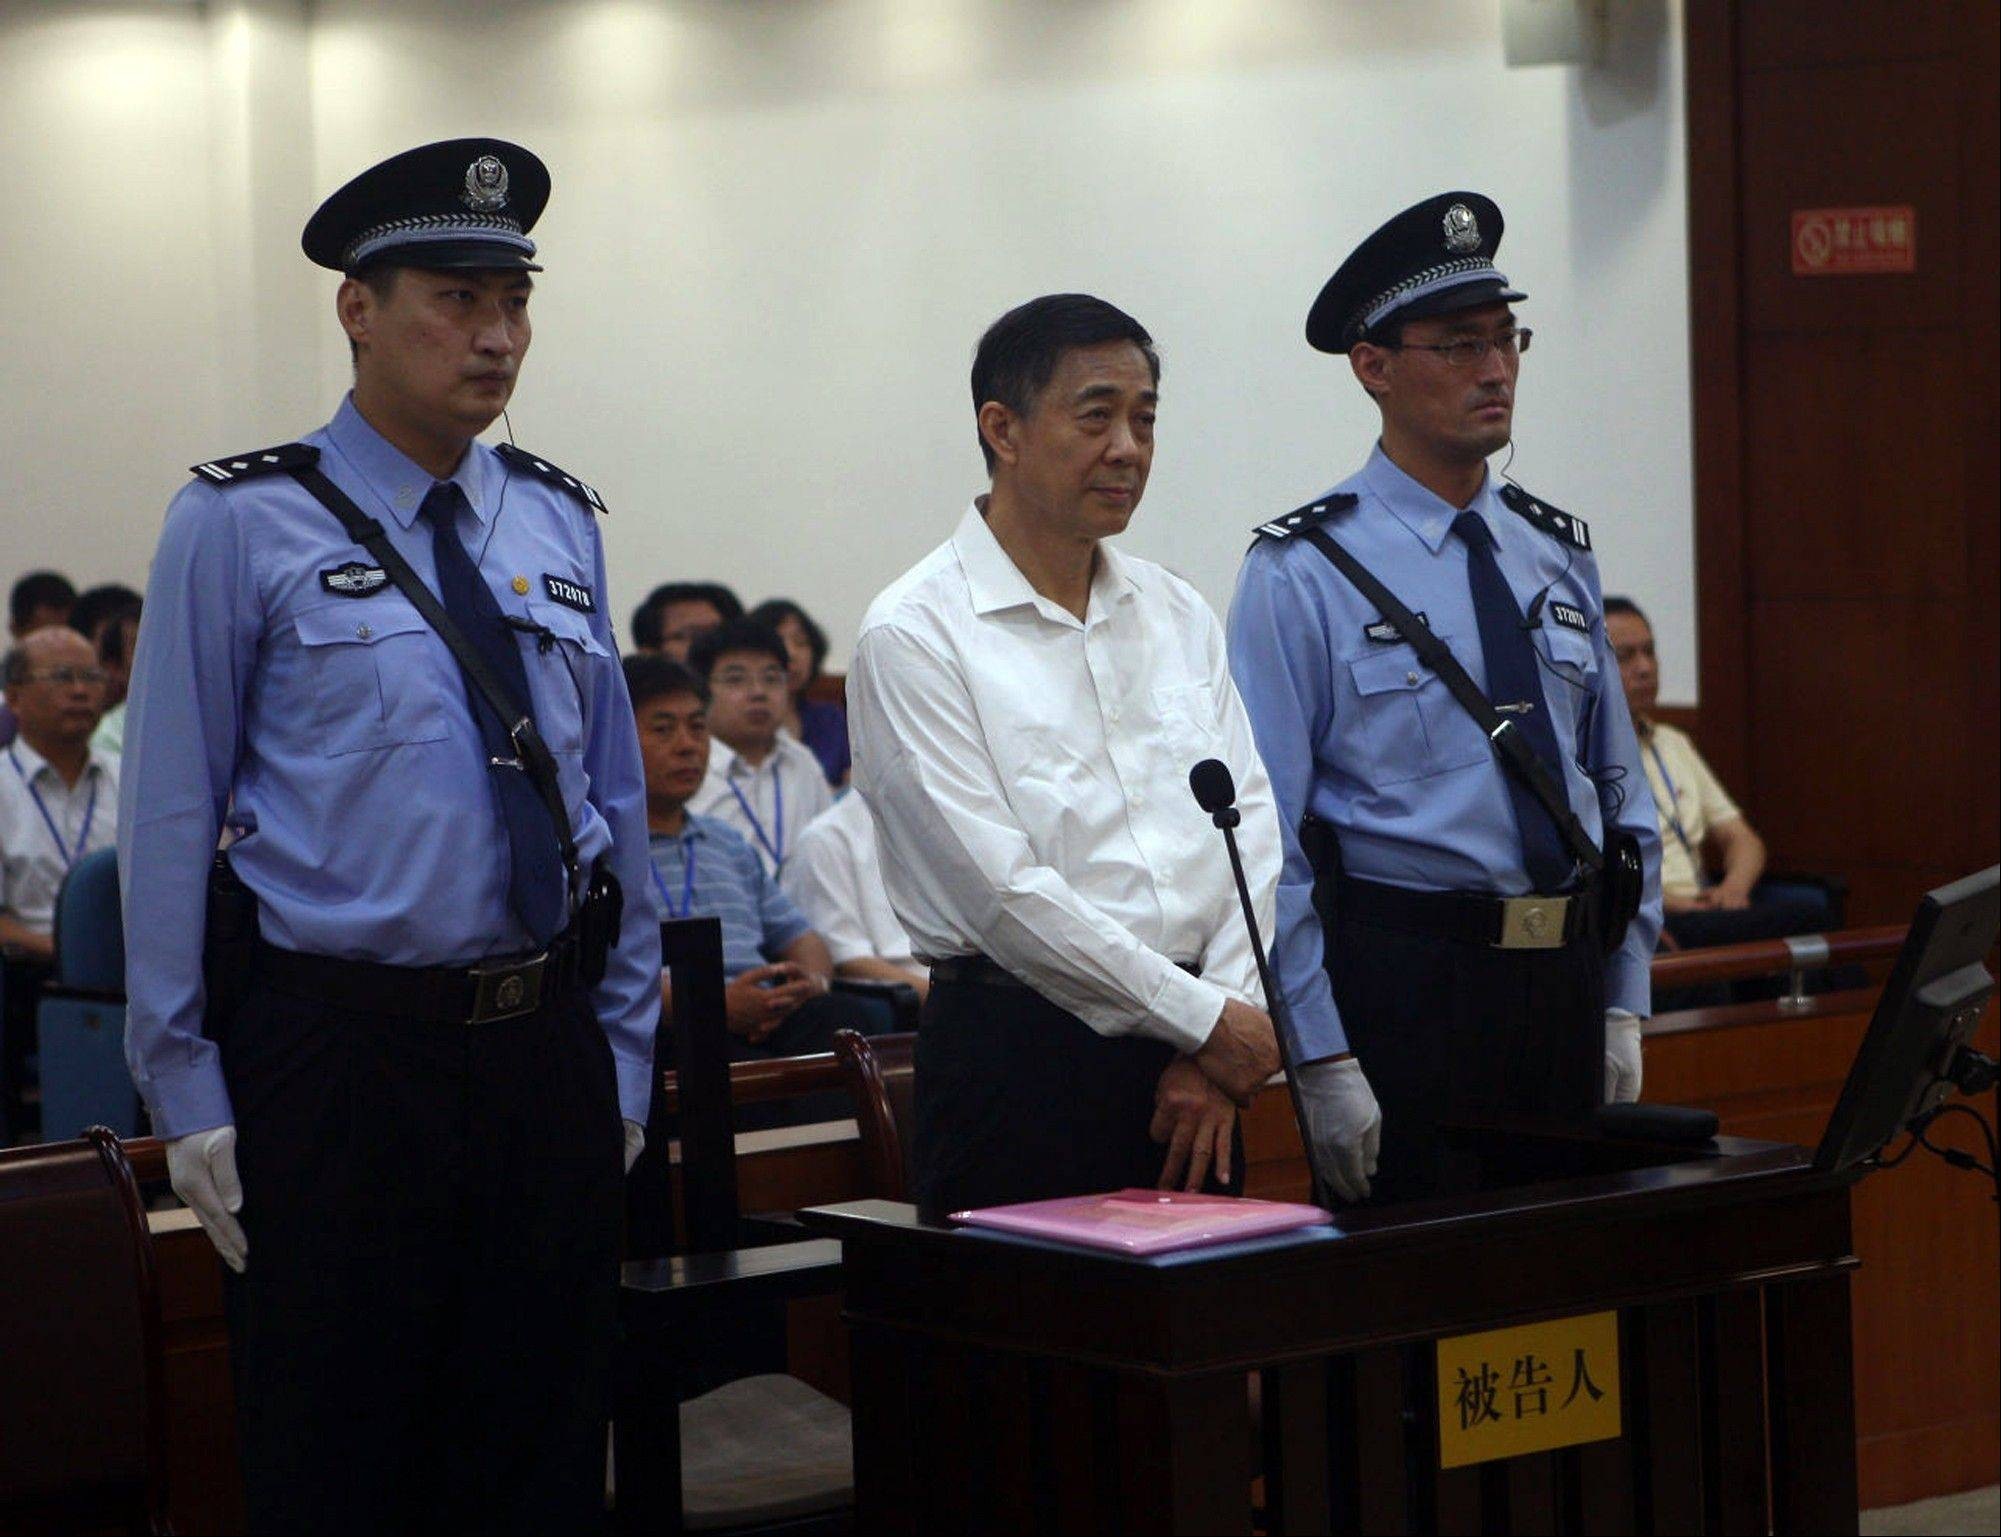 In this photo released Thursday by the Jinan Intermediate People�s Court, Bo Xilai, center, stands on trial at the court in eastern China�s Shandong province. The disgraced populist politician went on trial Thursday accused of abuse of power and netting more than $4 million in bribery and embezzlement, marking the ruling Communist Party�s attempts to put to rest one of China�s most lurid political scandals in decades.